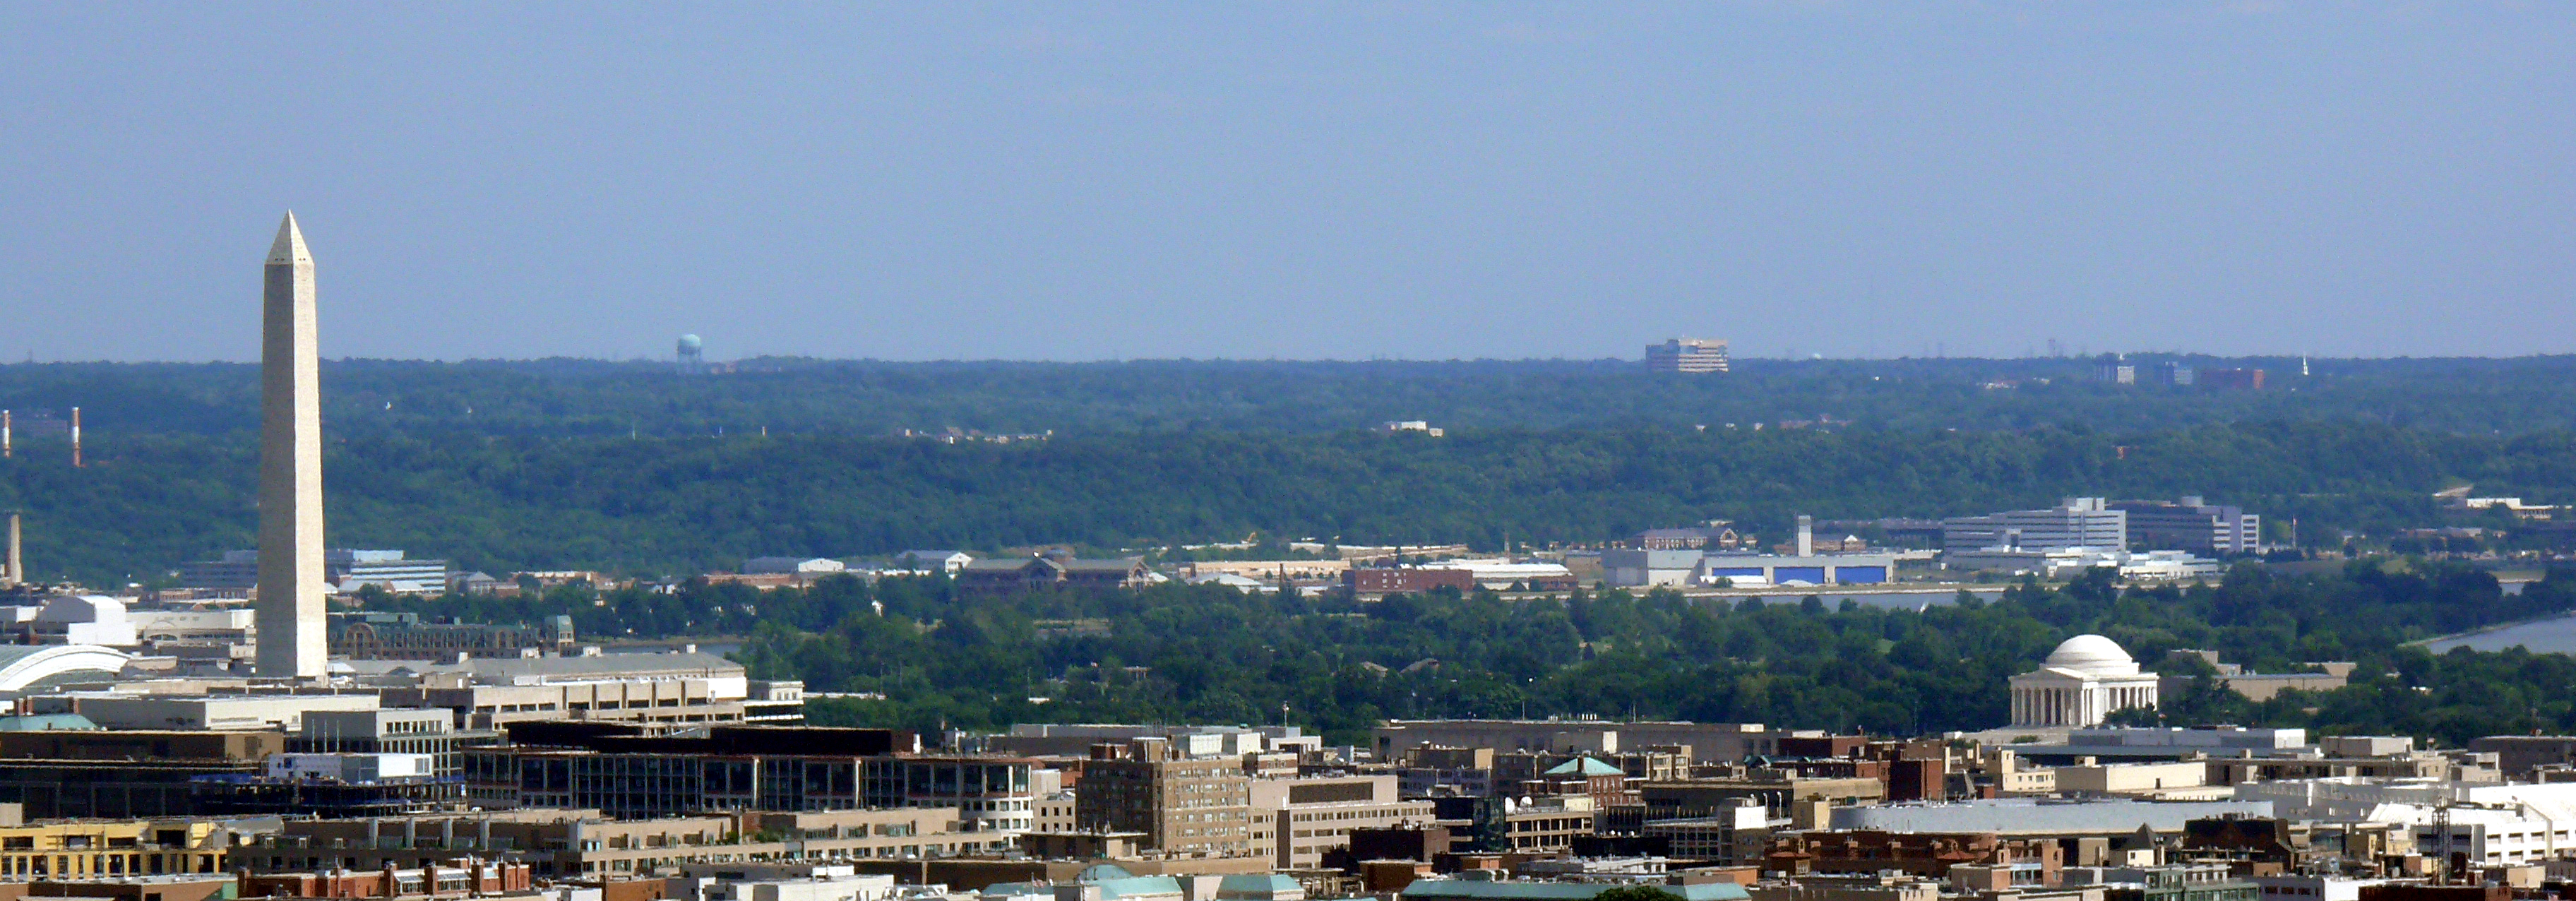 Washington dc skyline